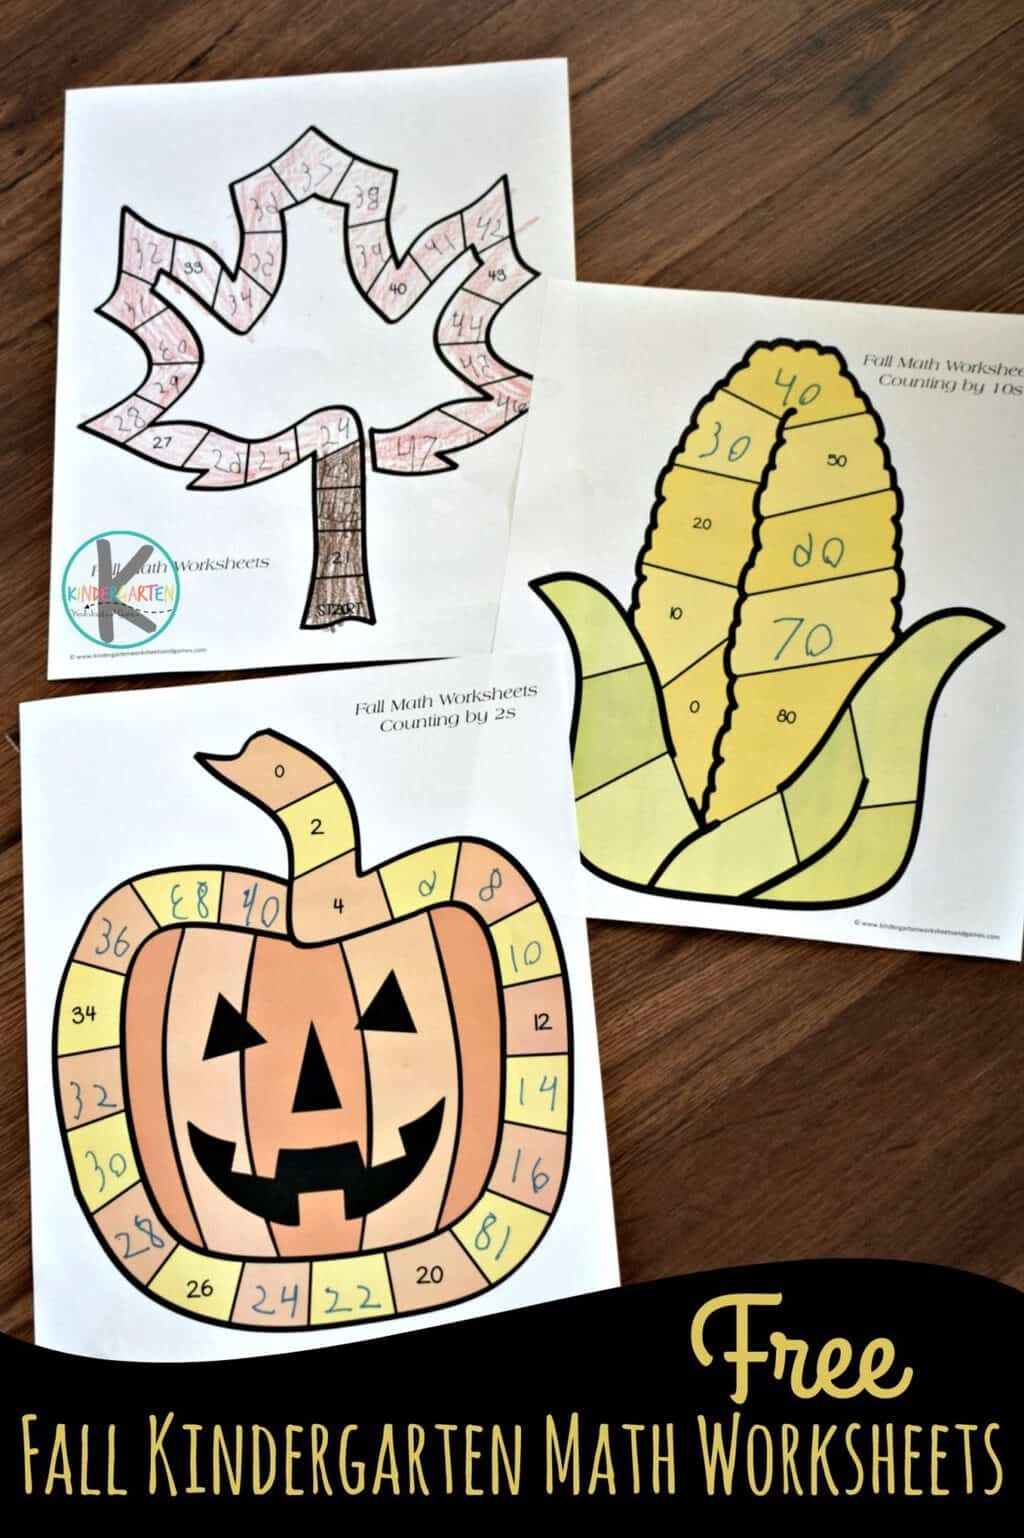 Fall Kindergarten Math Worksheets